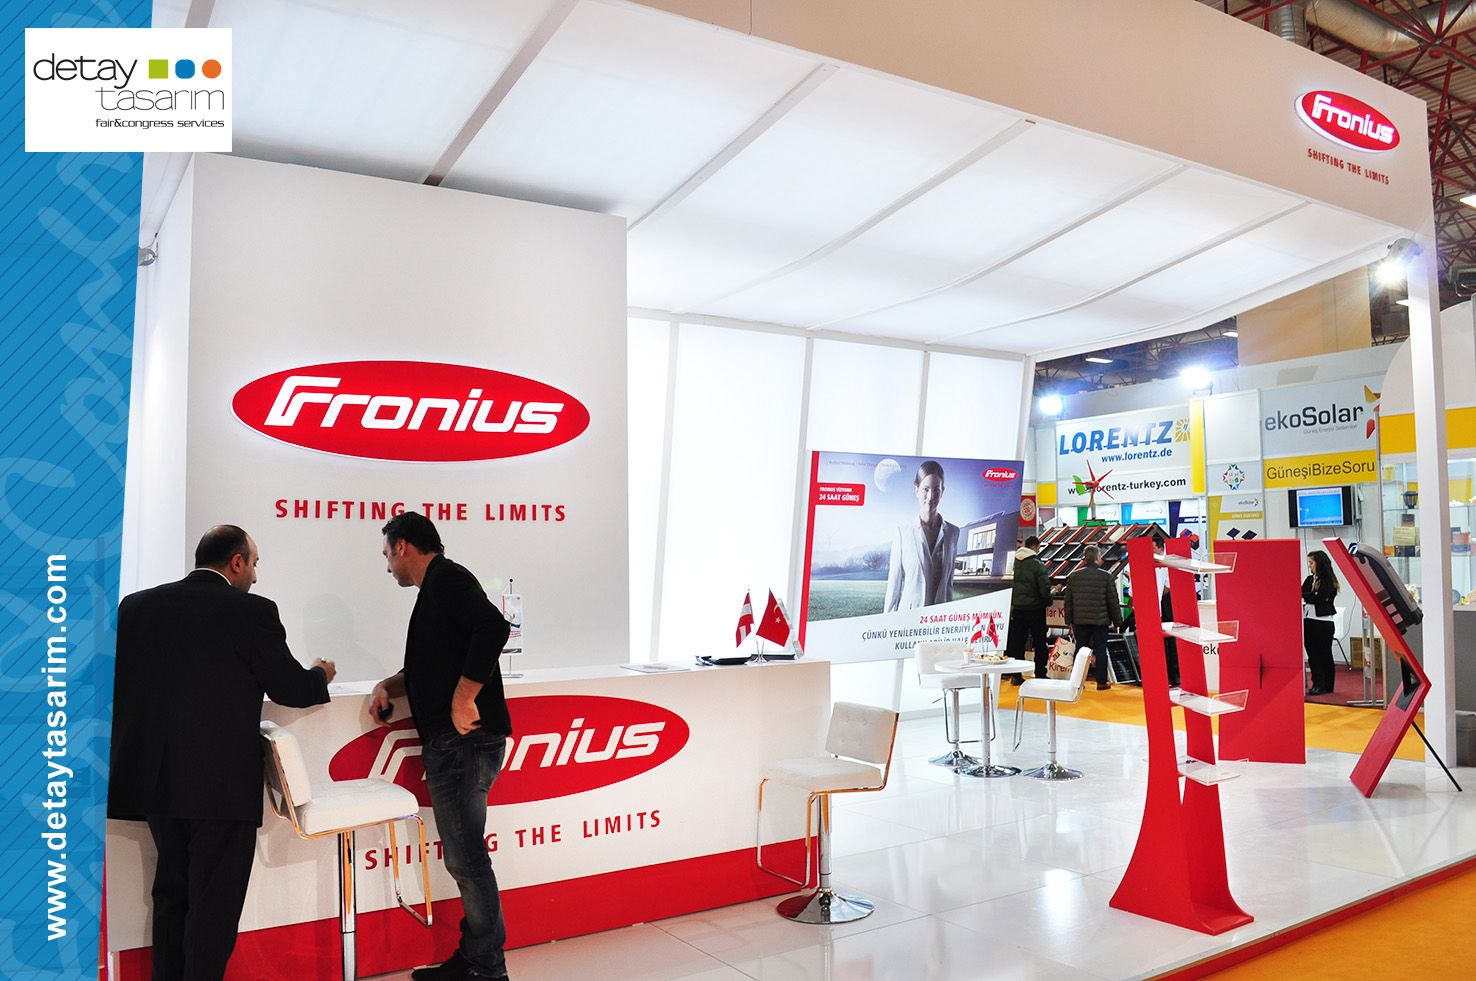 Fronius Stand by Detay Tasarım 3